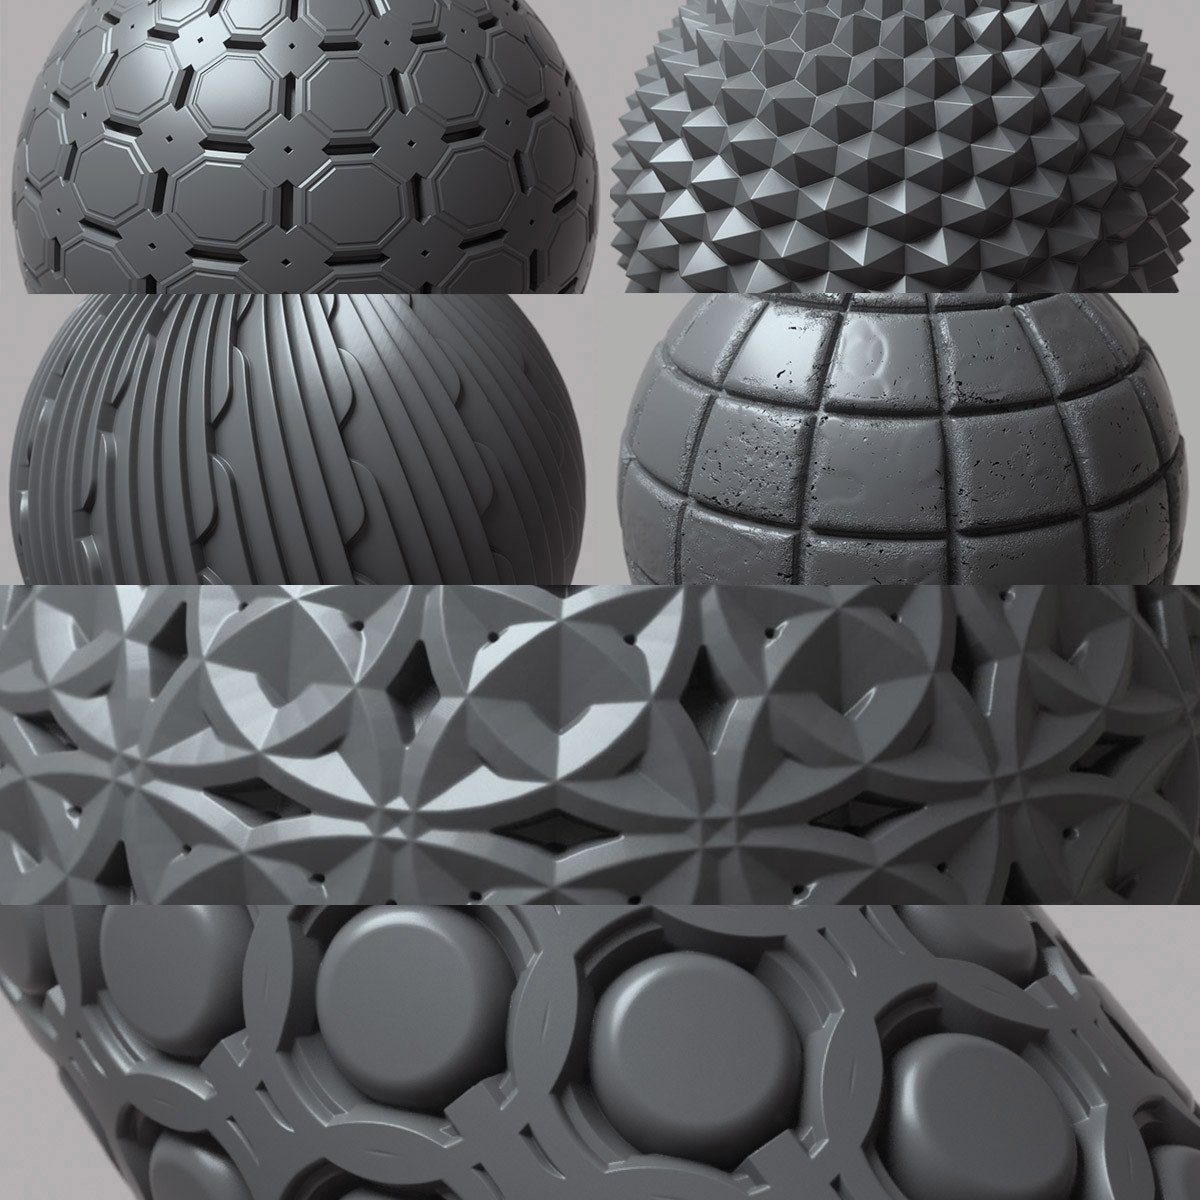 100%20tileable%20displacement%20patterns%20preview%208